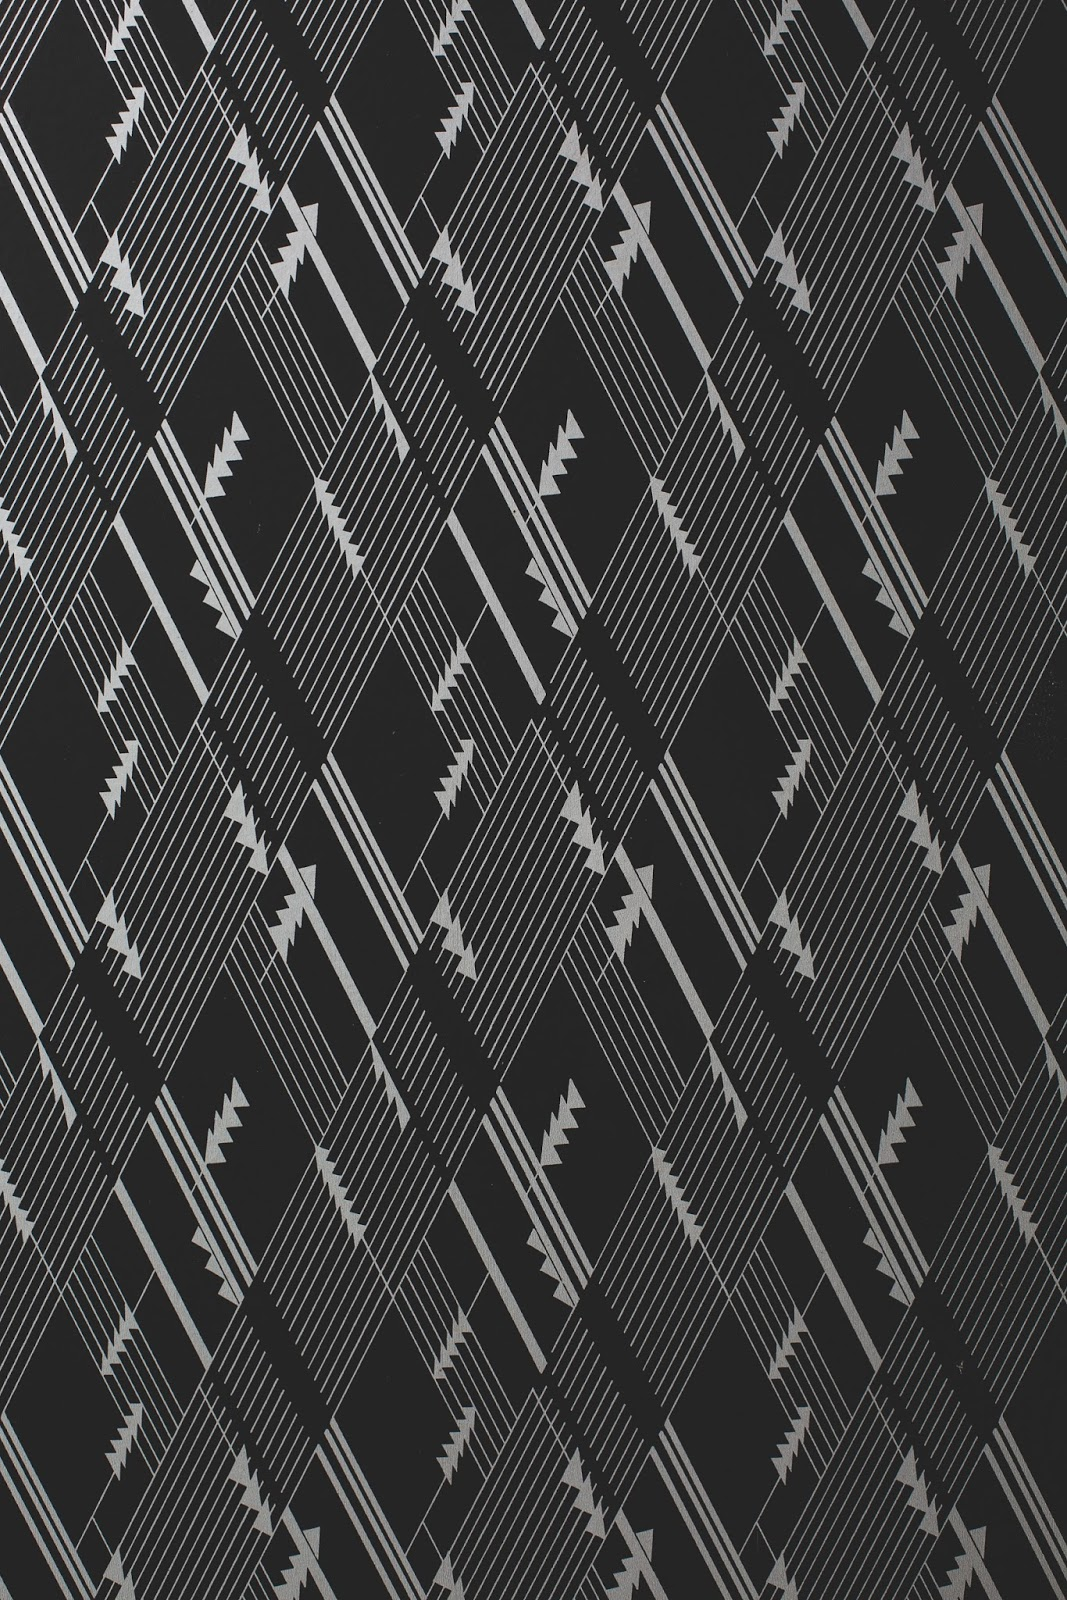 Art Deco geometric black and white wallpaper in Bells Theatre, Bells TN - bit.ly/bellstheatre